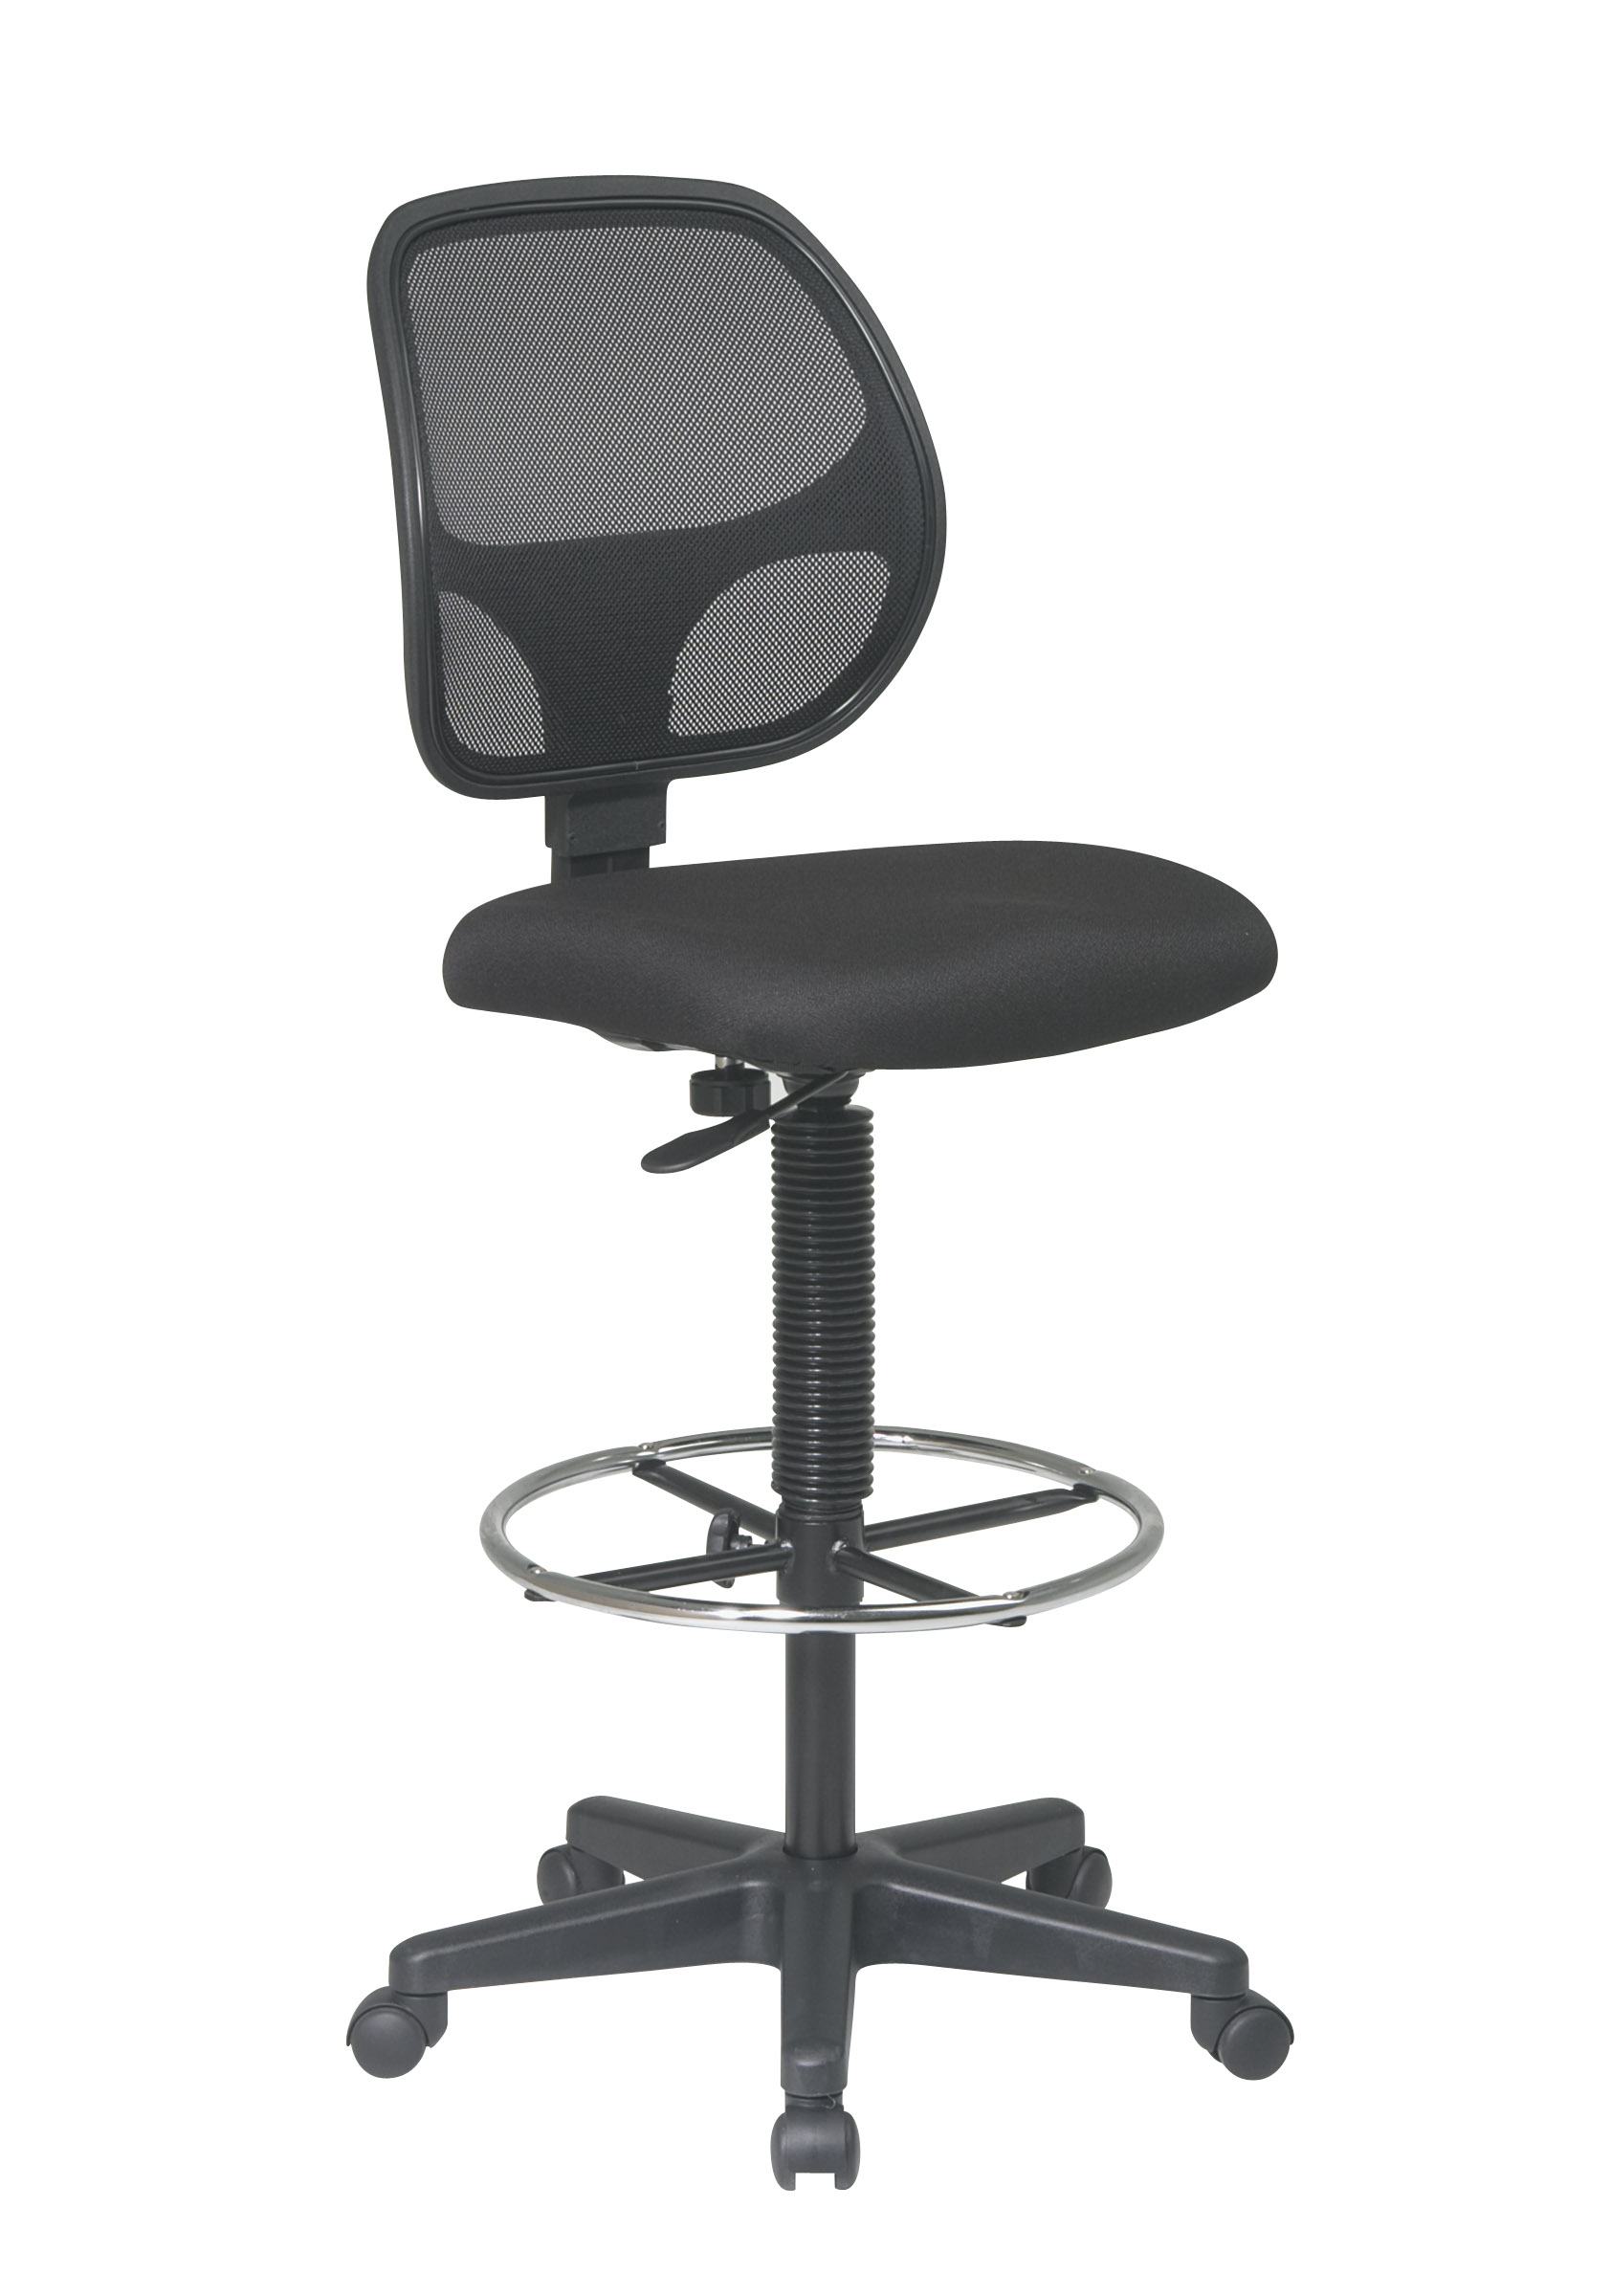 Office Star Deluxe Mesh Back Drafting Chair By OJ Commerce DC2990